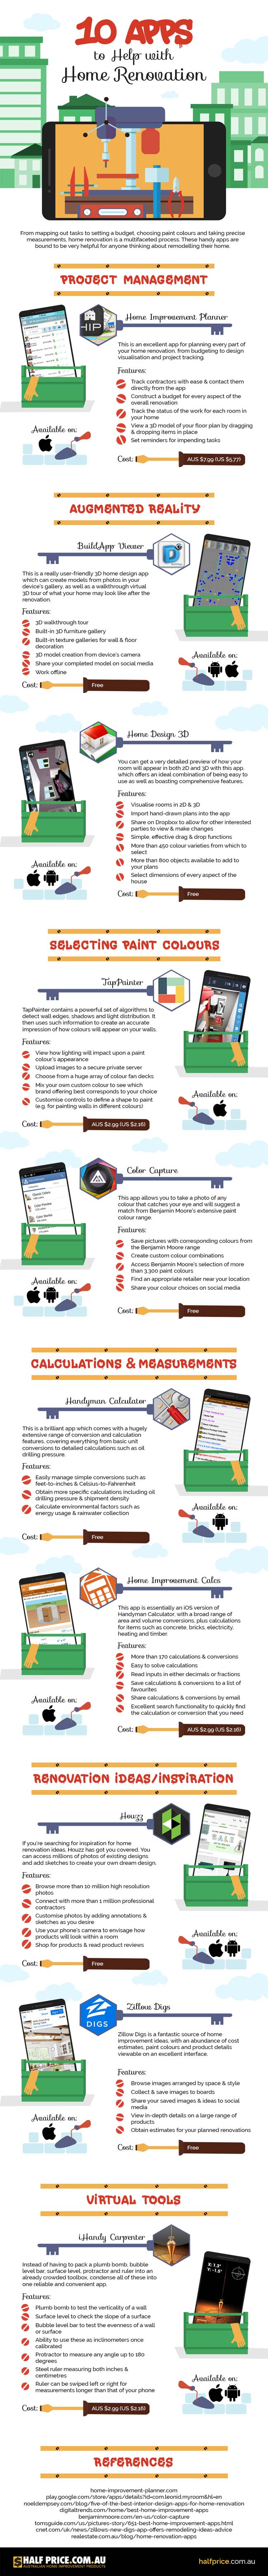 10-apps-help-home-renovation-infographic